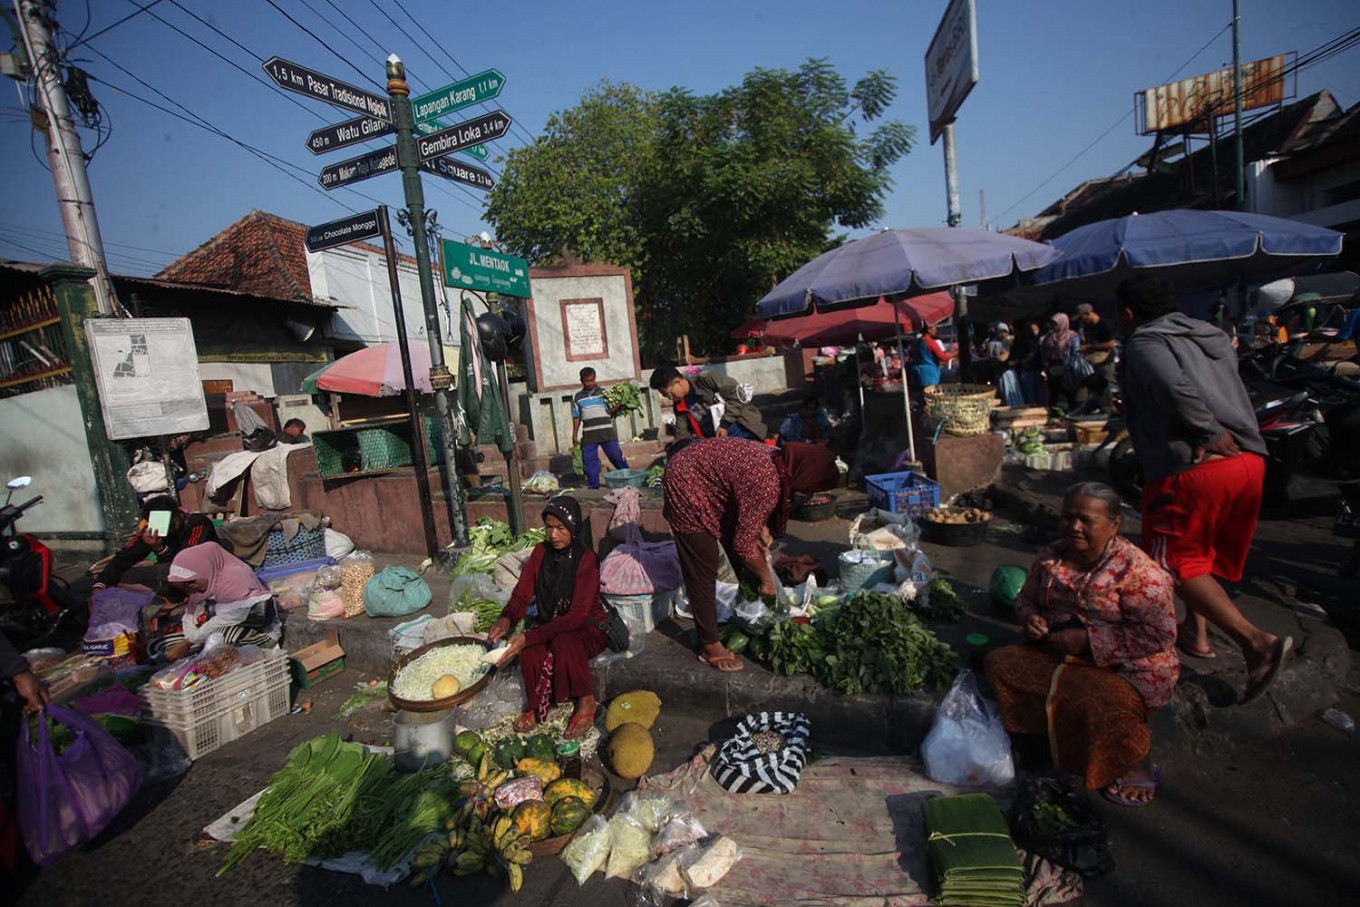 Historical meeting point: Pasar Gede traditional market has existed since before the time of Panembahan Senopati, a ruler of the Mataram Sultanate. JP/ Boy T Harjanto